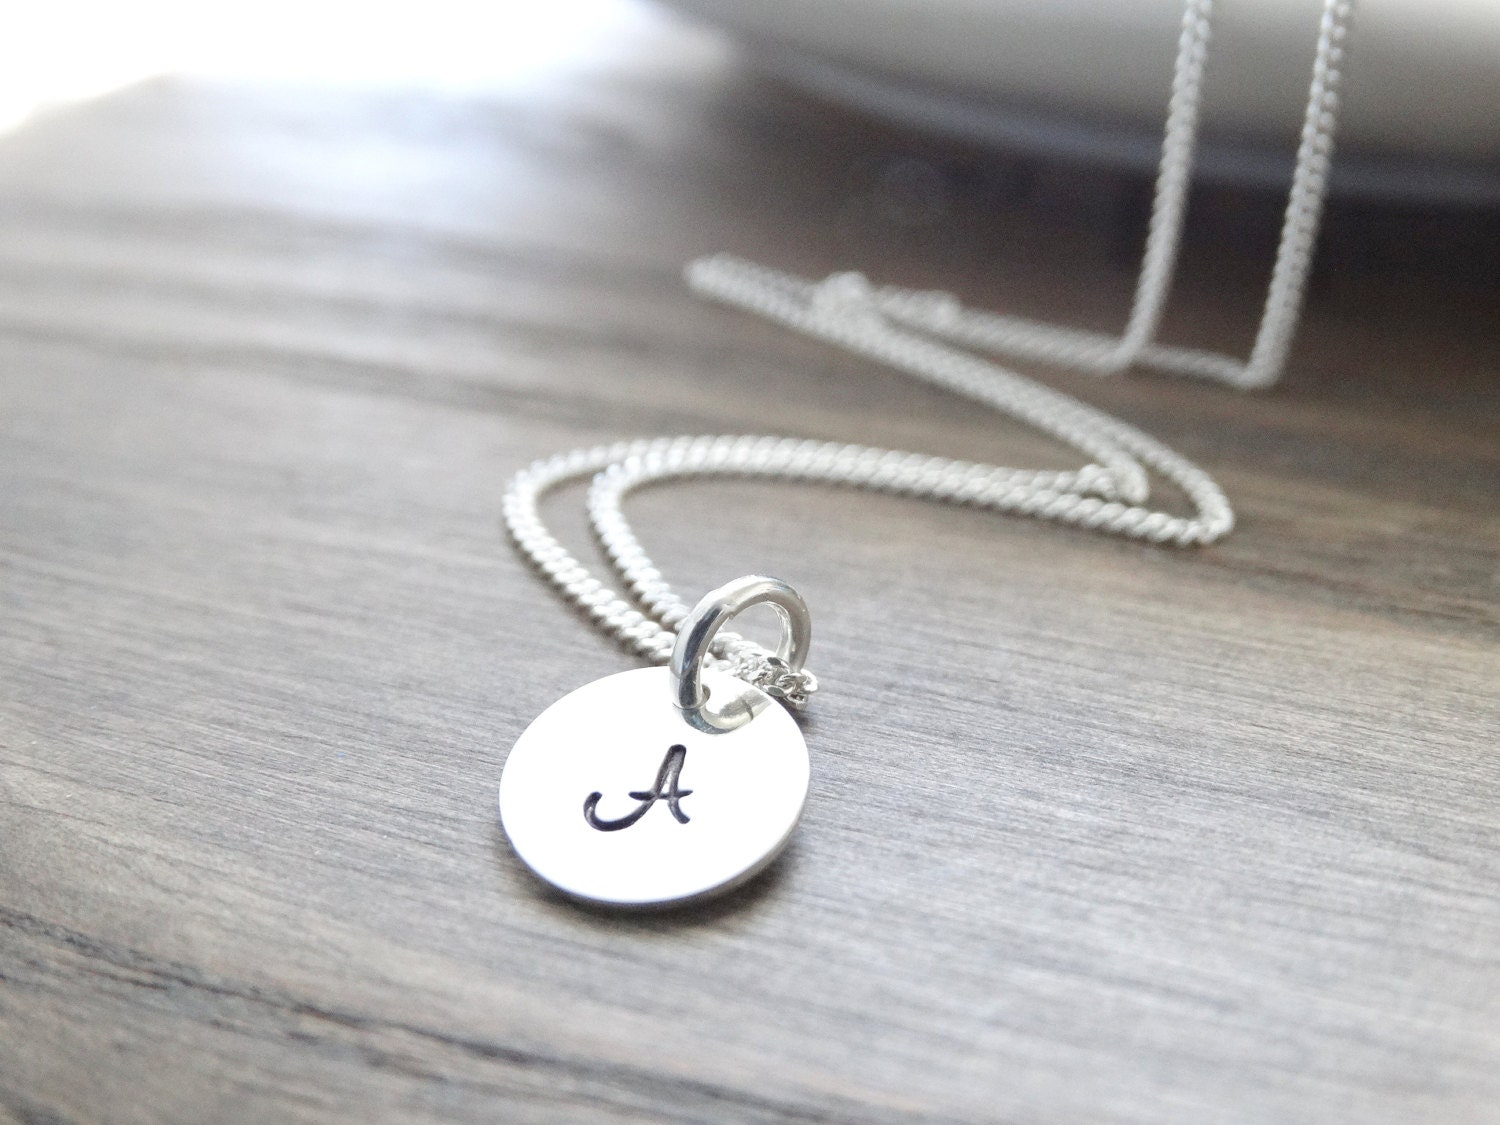 Initial necklace sterling silver monogram necklace silver initial initial necklace sterling silver monogram necklace silver initial necklace silver letter necklace alphabet charm necklace aloadofball Images